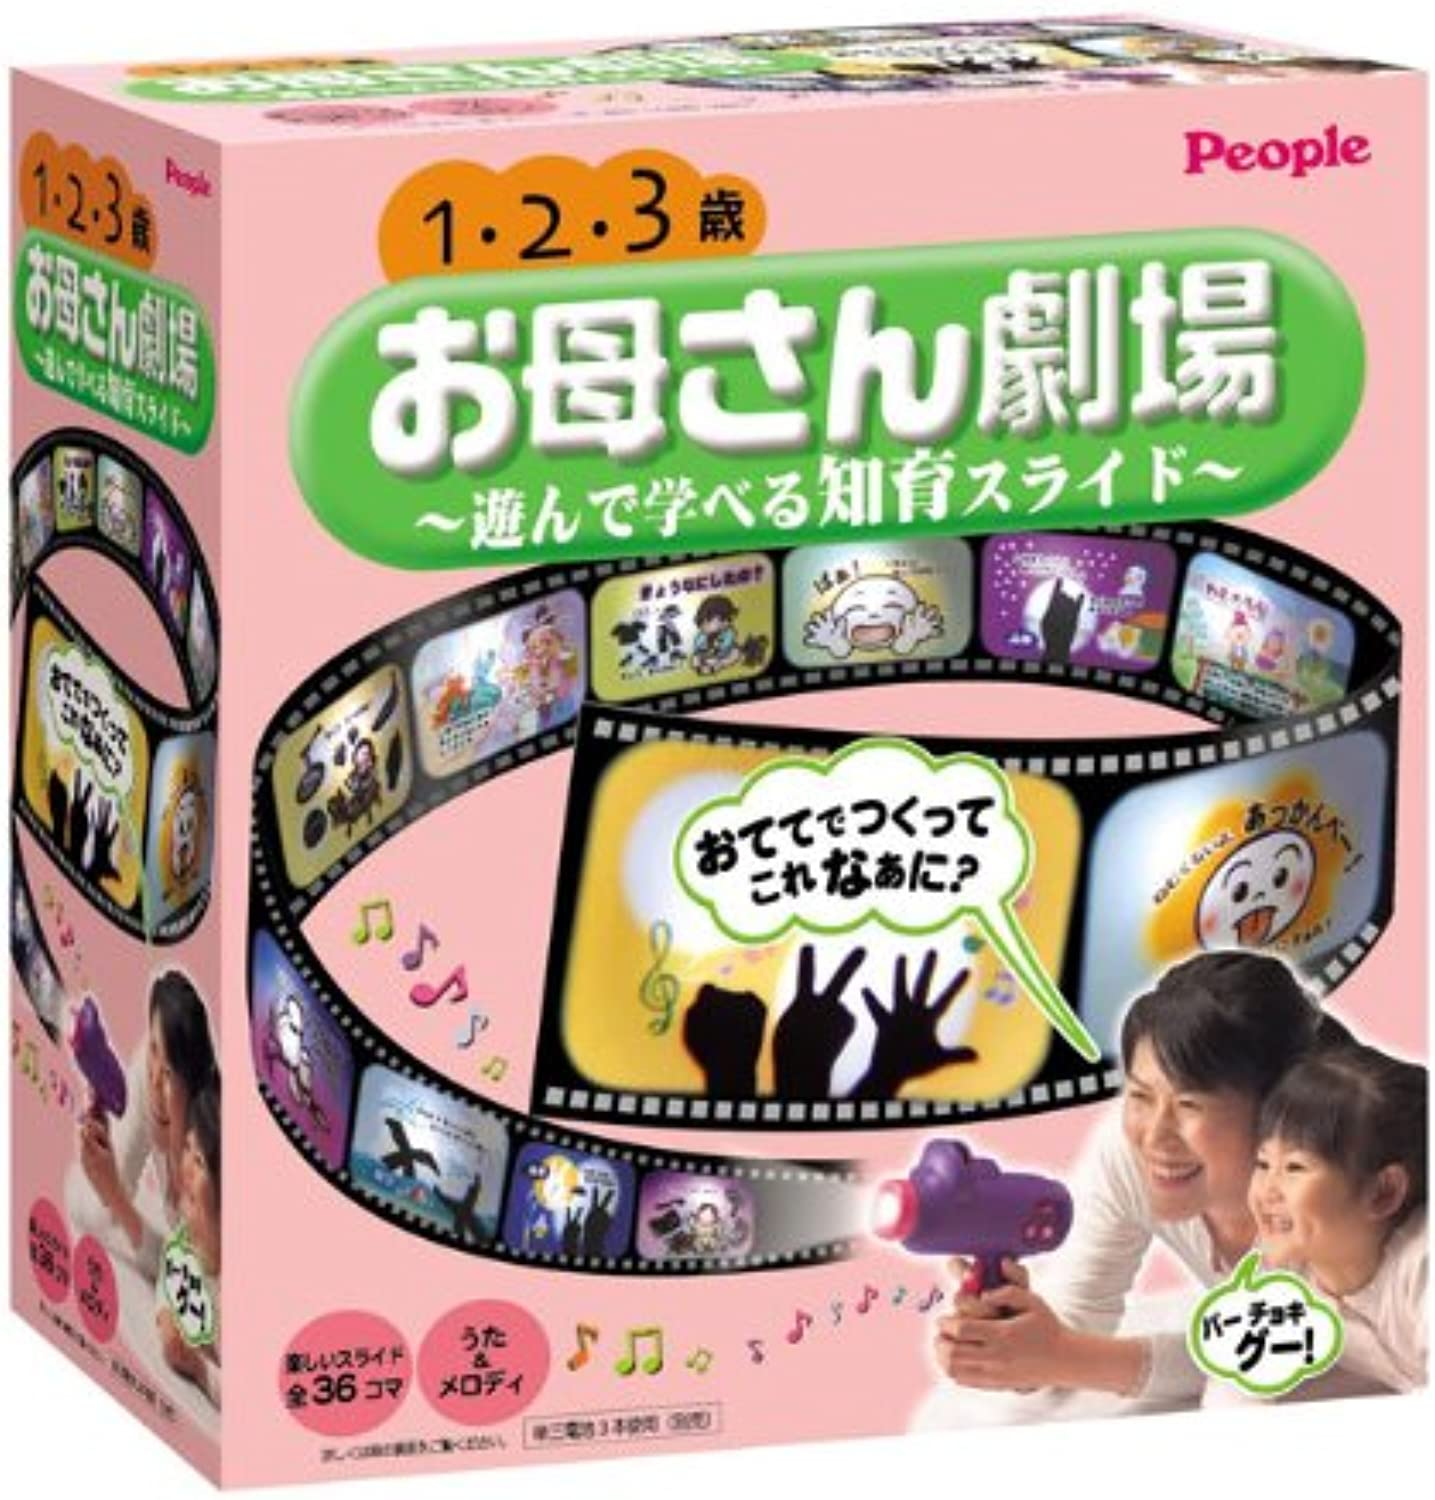 Educational slide to learn playing mom theater (japan import)